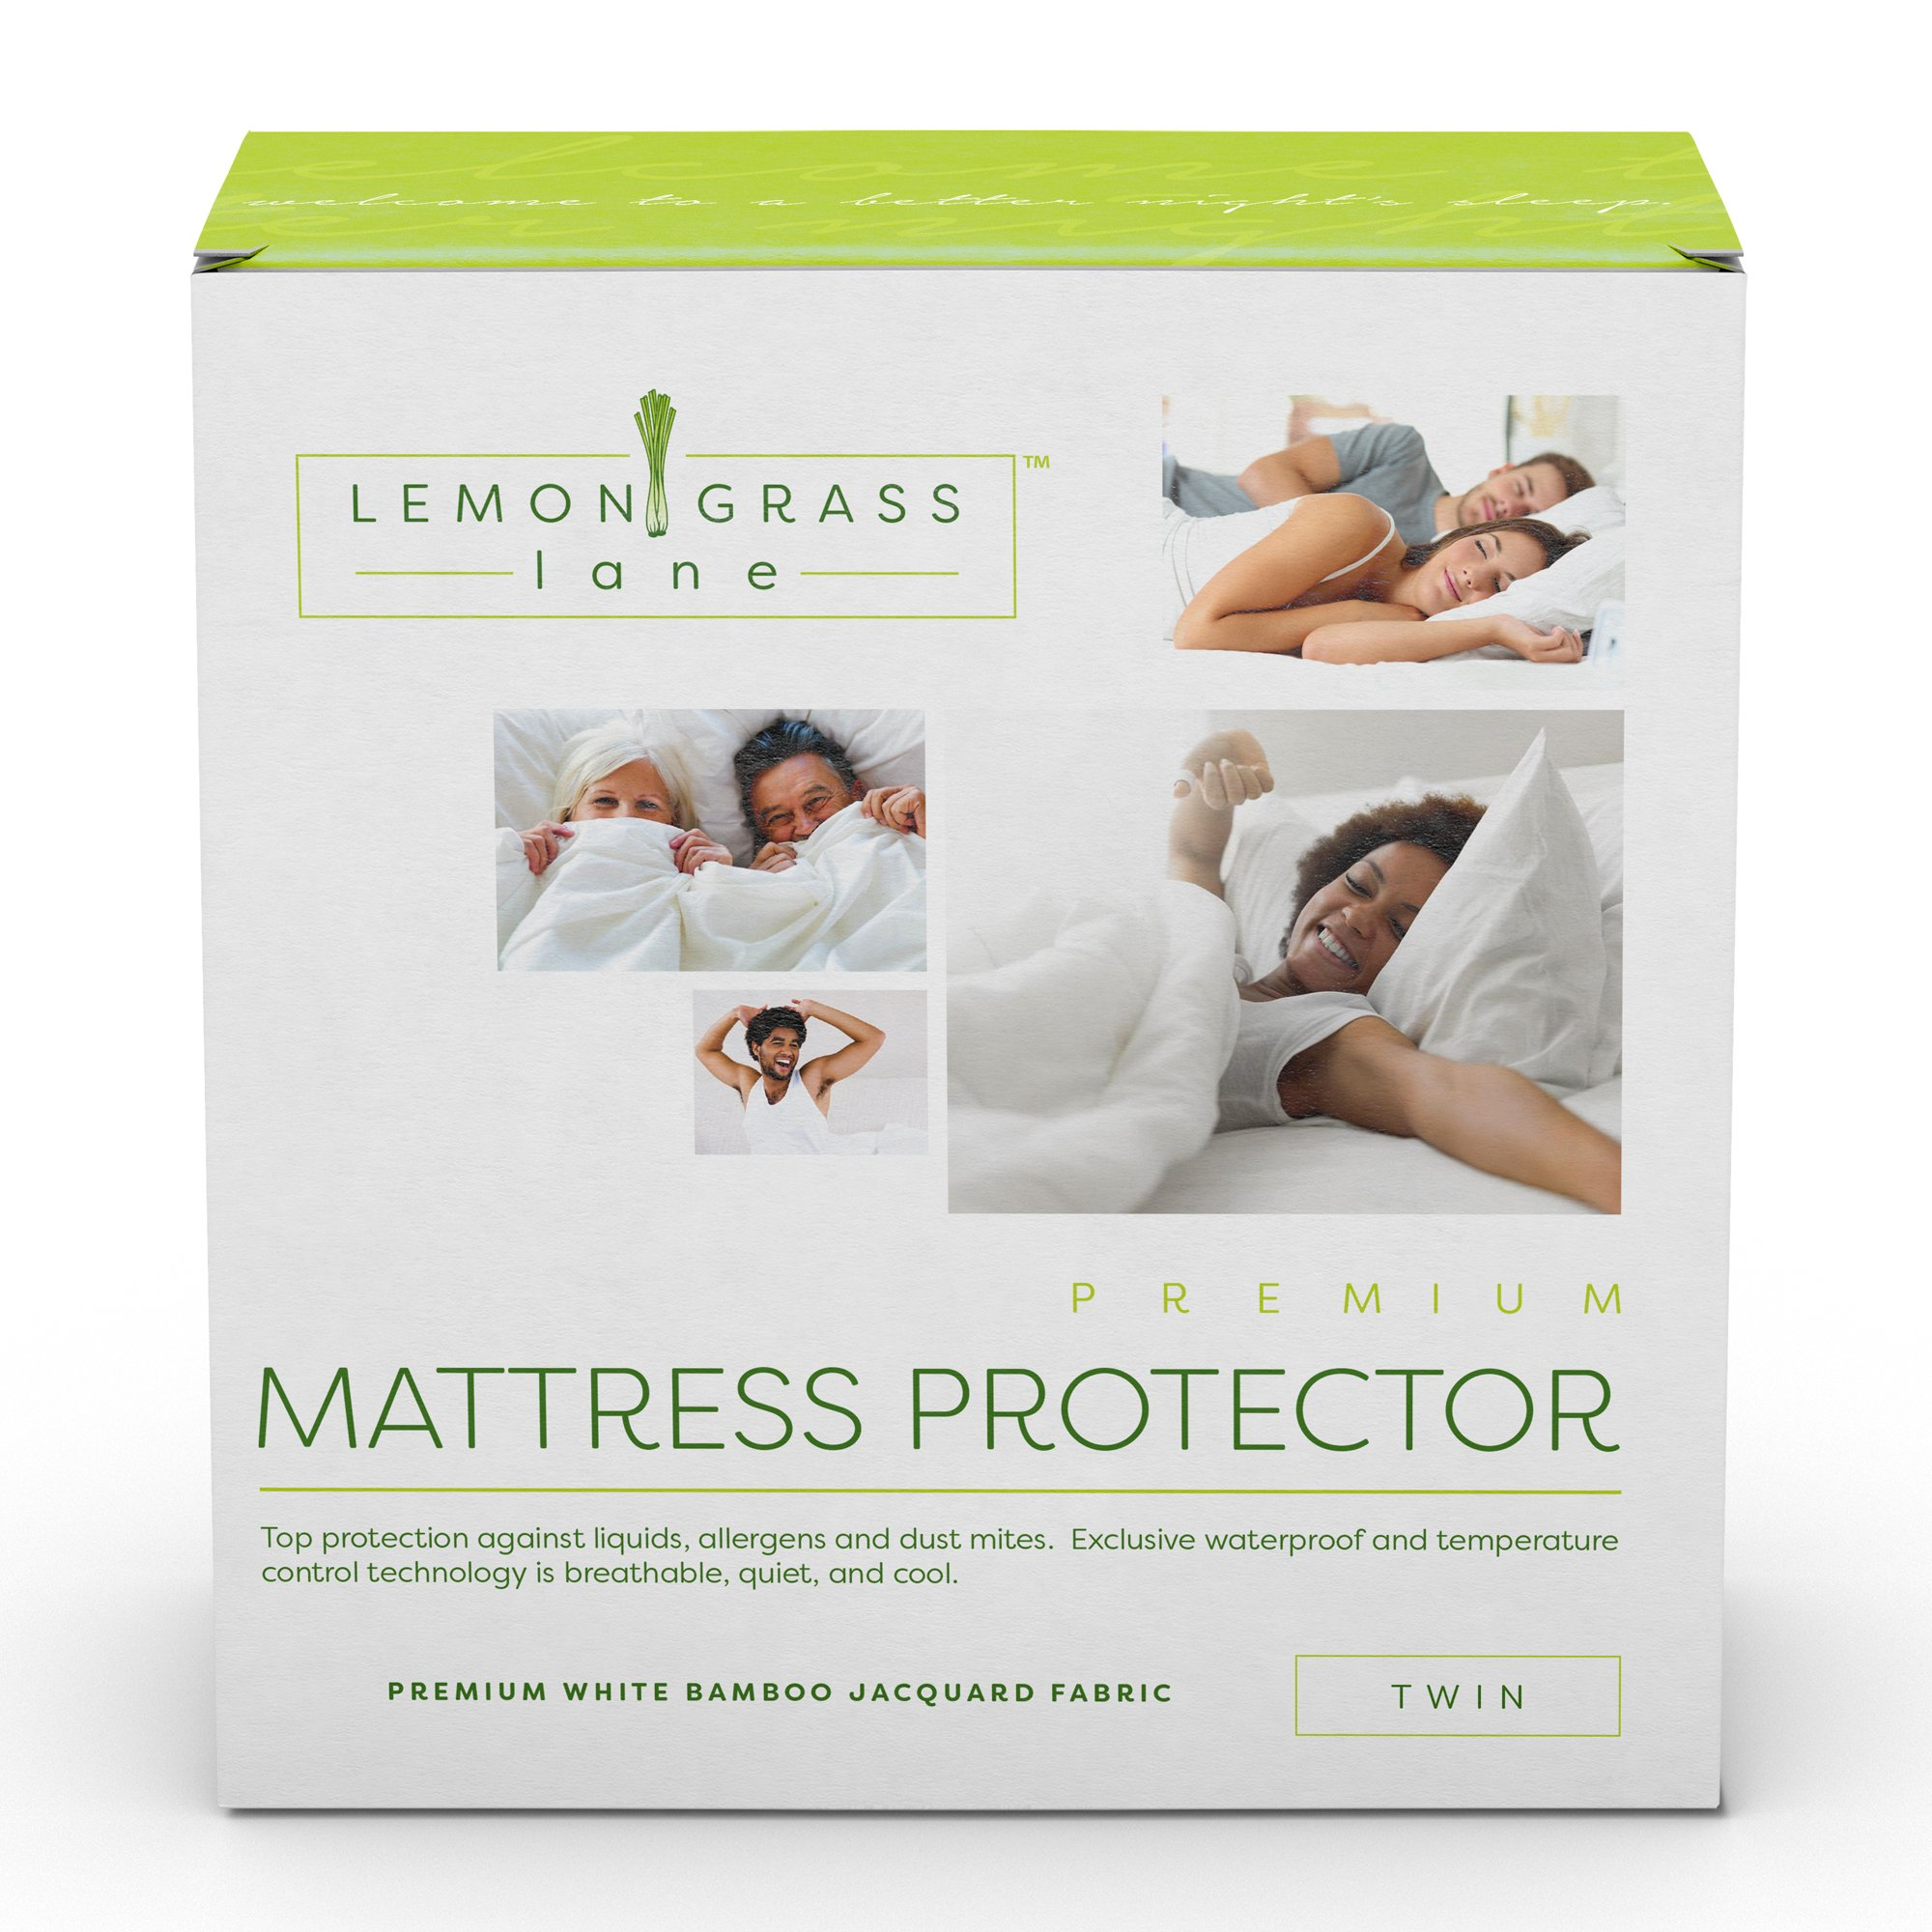 Bamboo Hypoallergenic Mattress Pad Protector Cover by Lemongrass Lane - Waterproof Breathable Cooling Topper, Vinyl Free - Twin Size by Lemongrass Lane (Image #1)